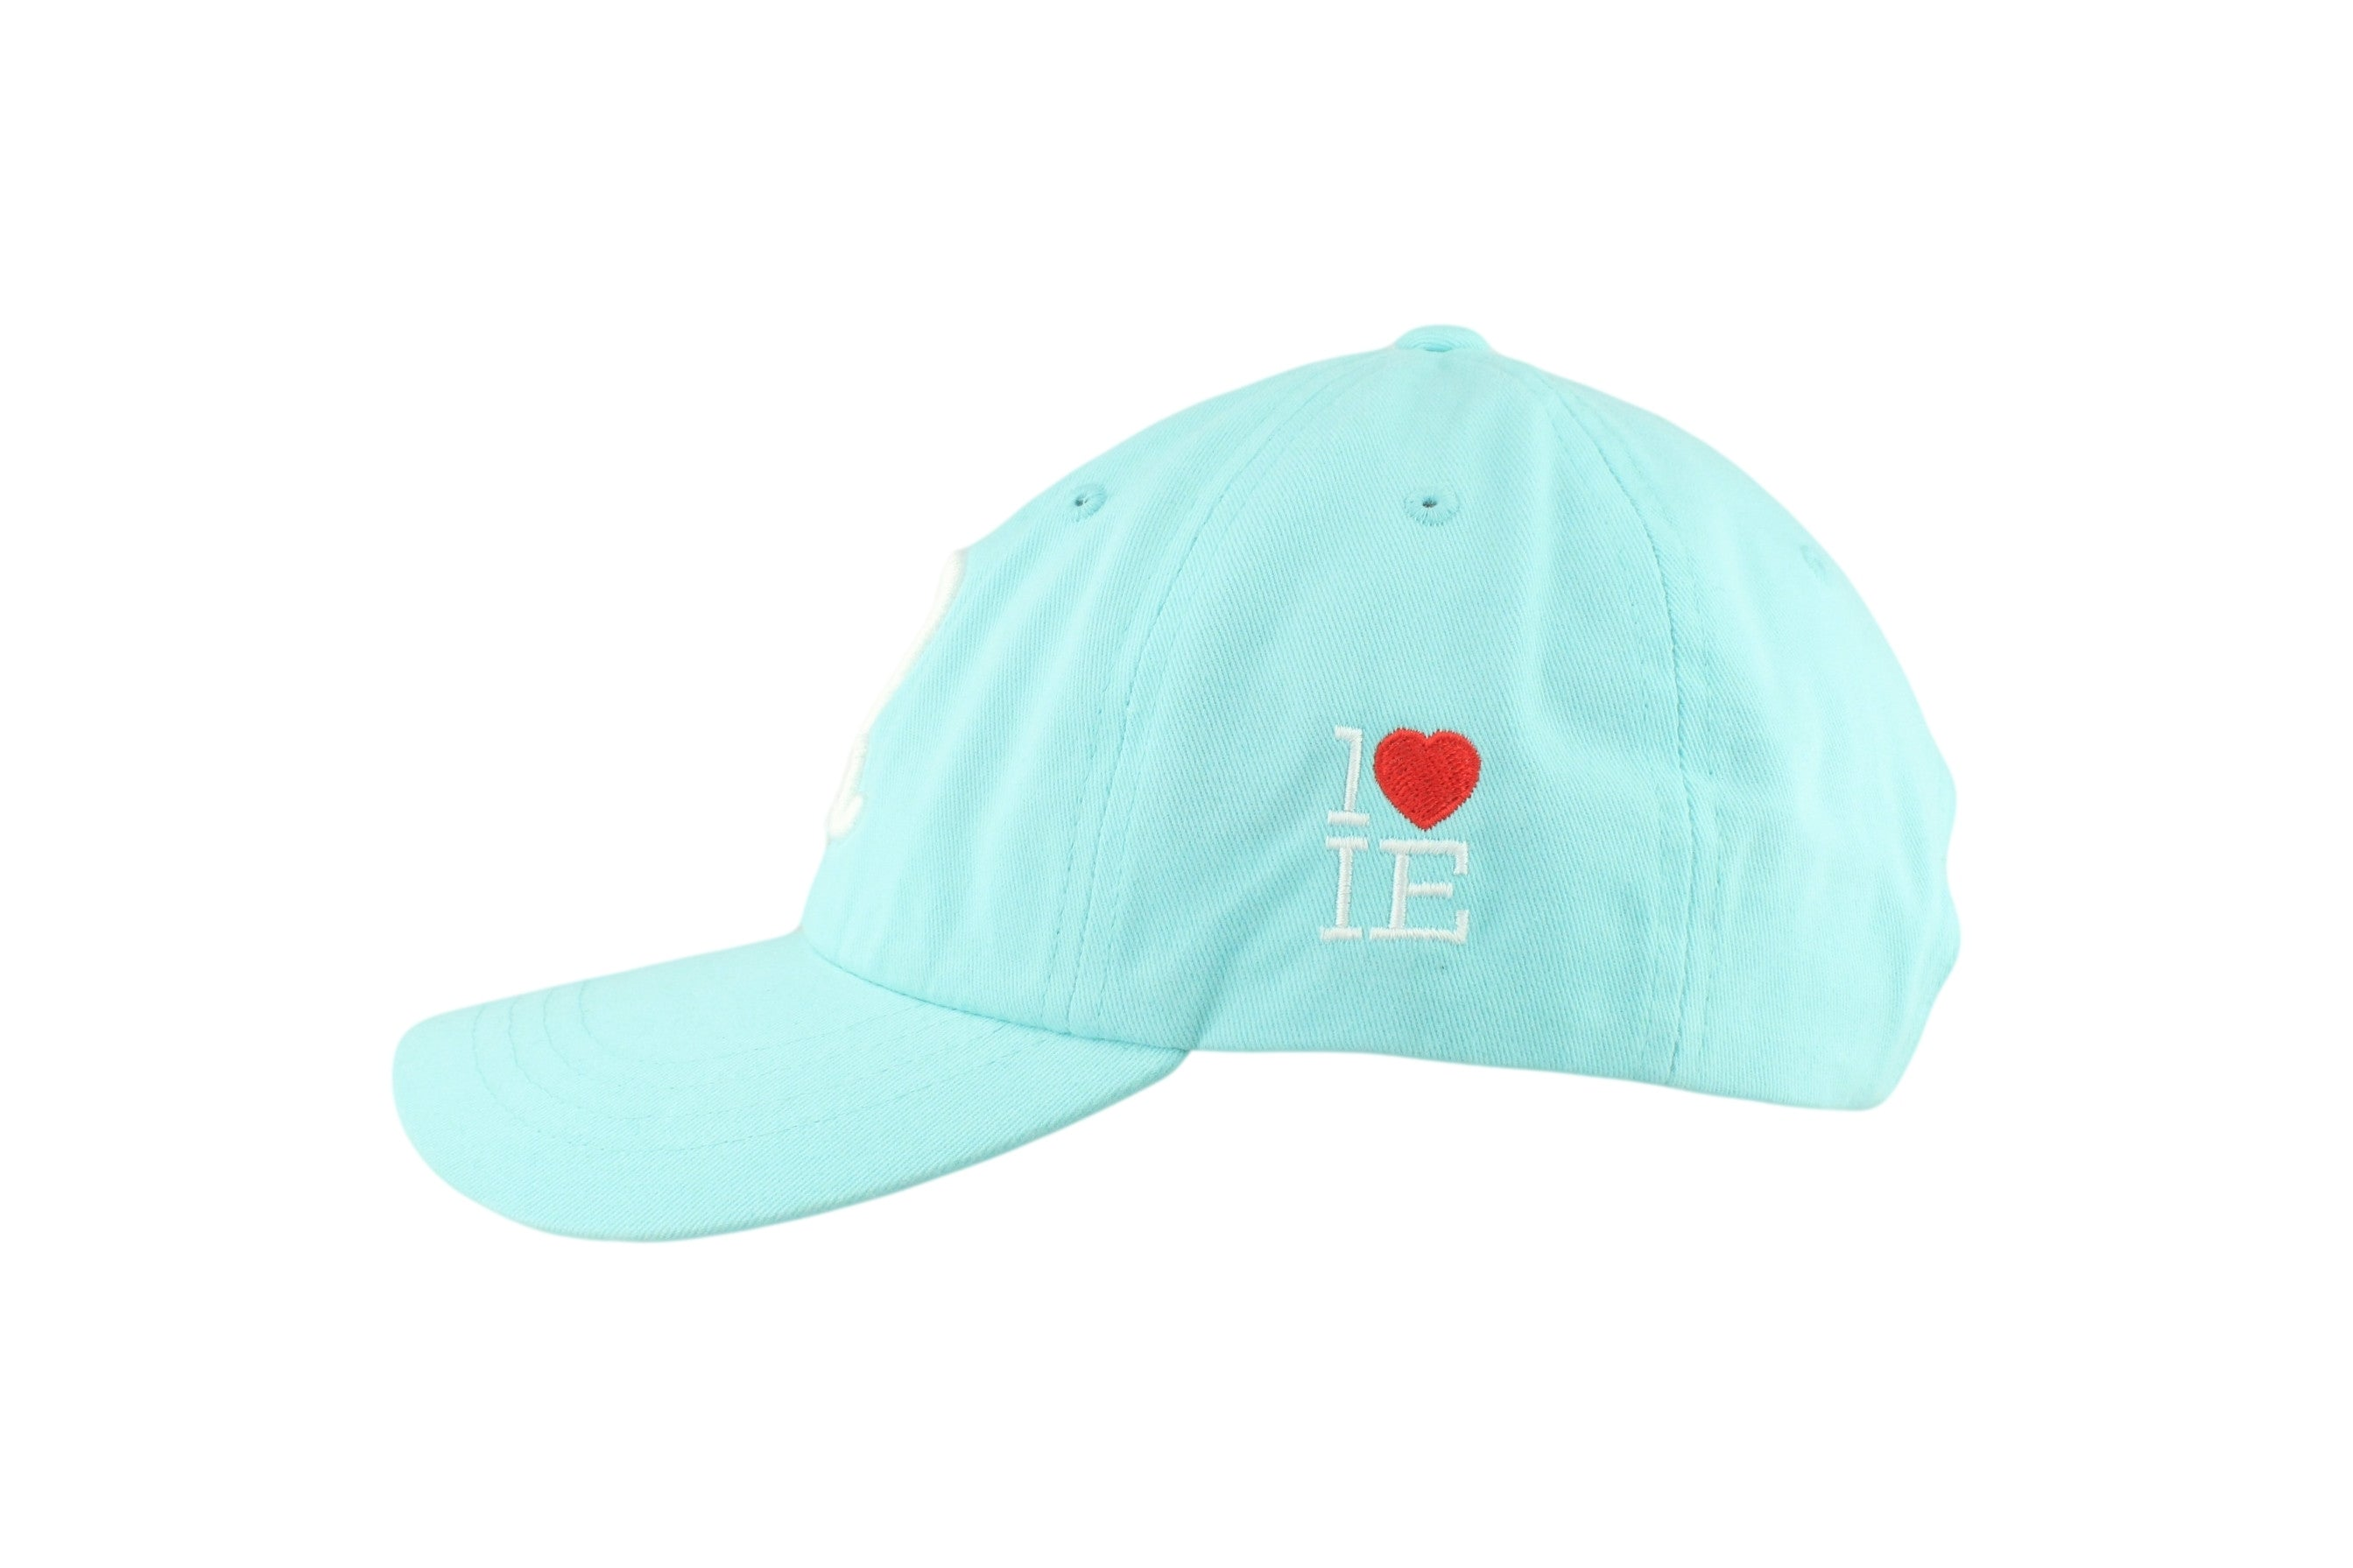 1LoveIE Signature Dad Hat (Teal/White)